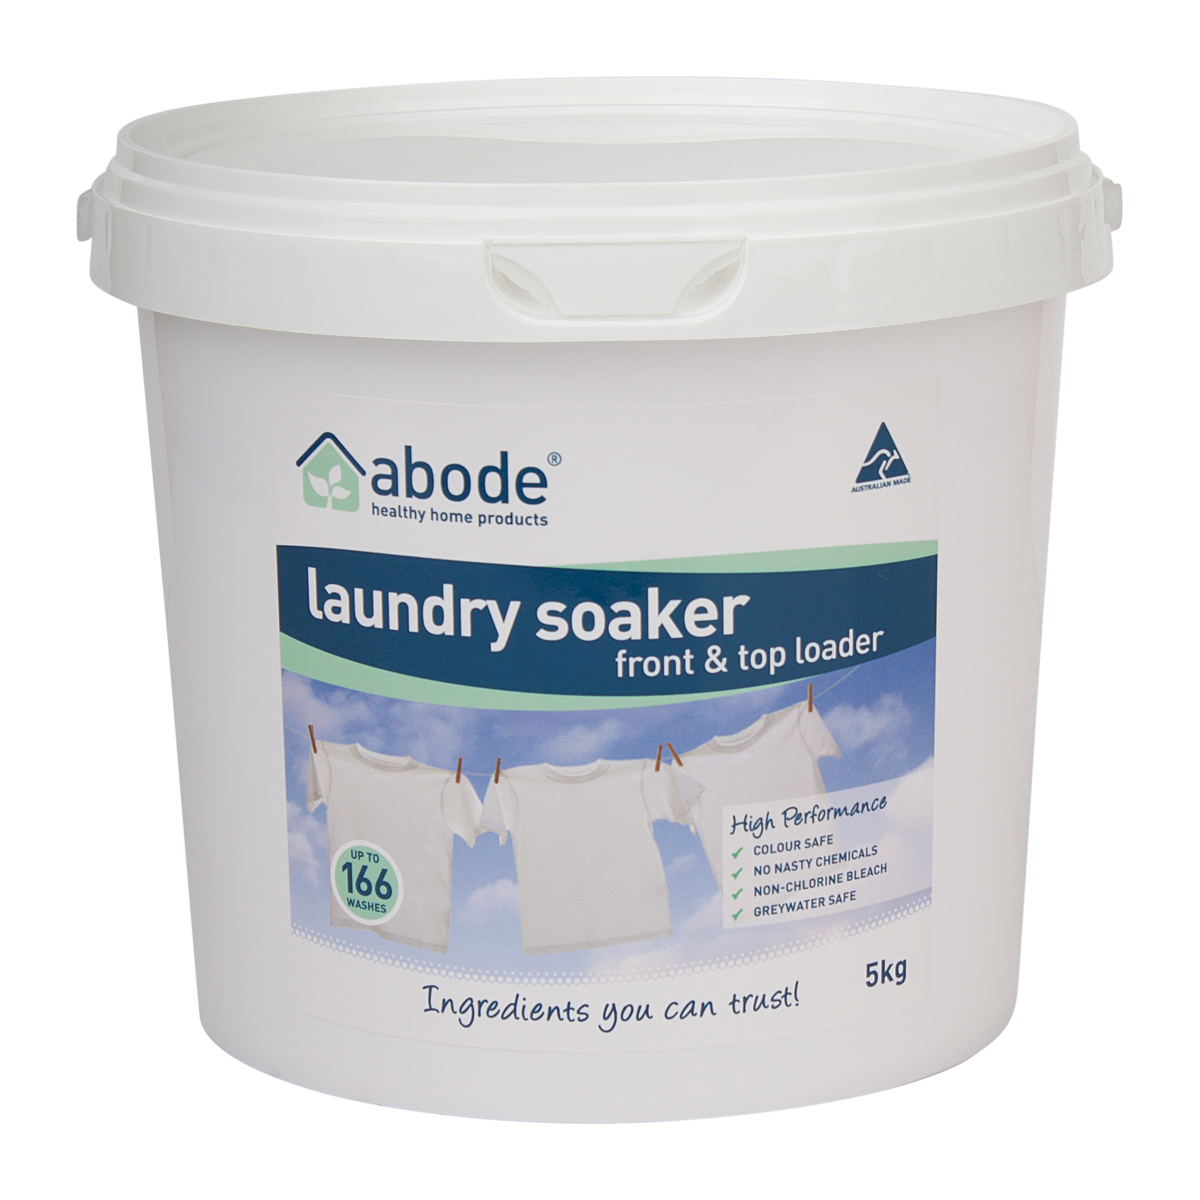 Abode Laundry Soaker High Performance (5kg)